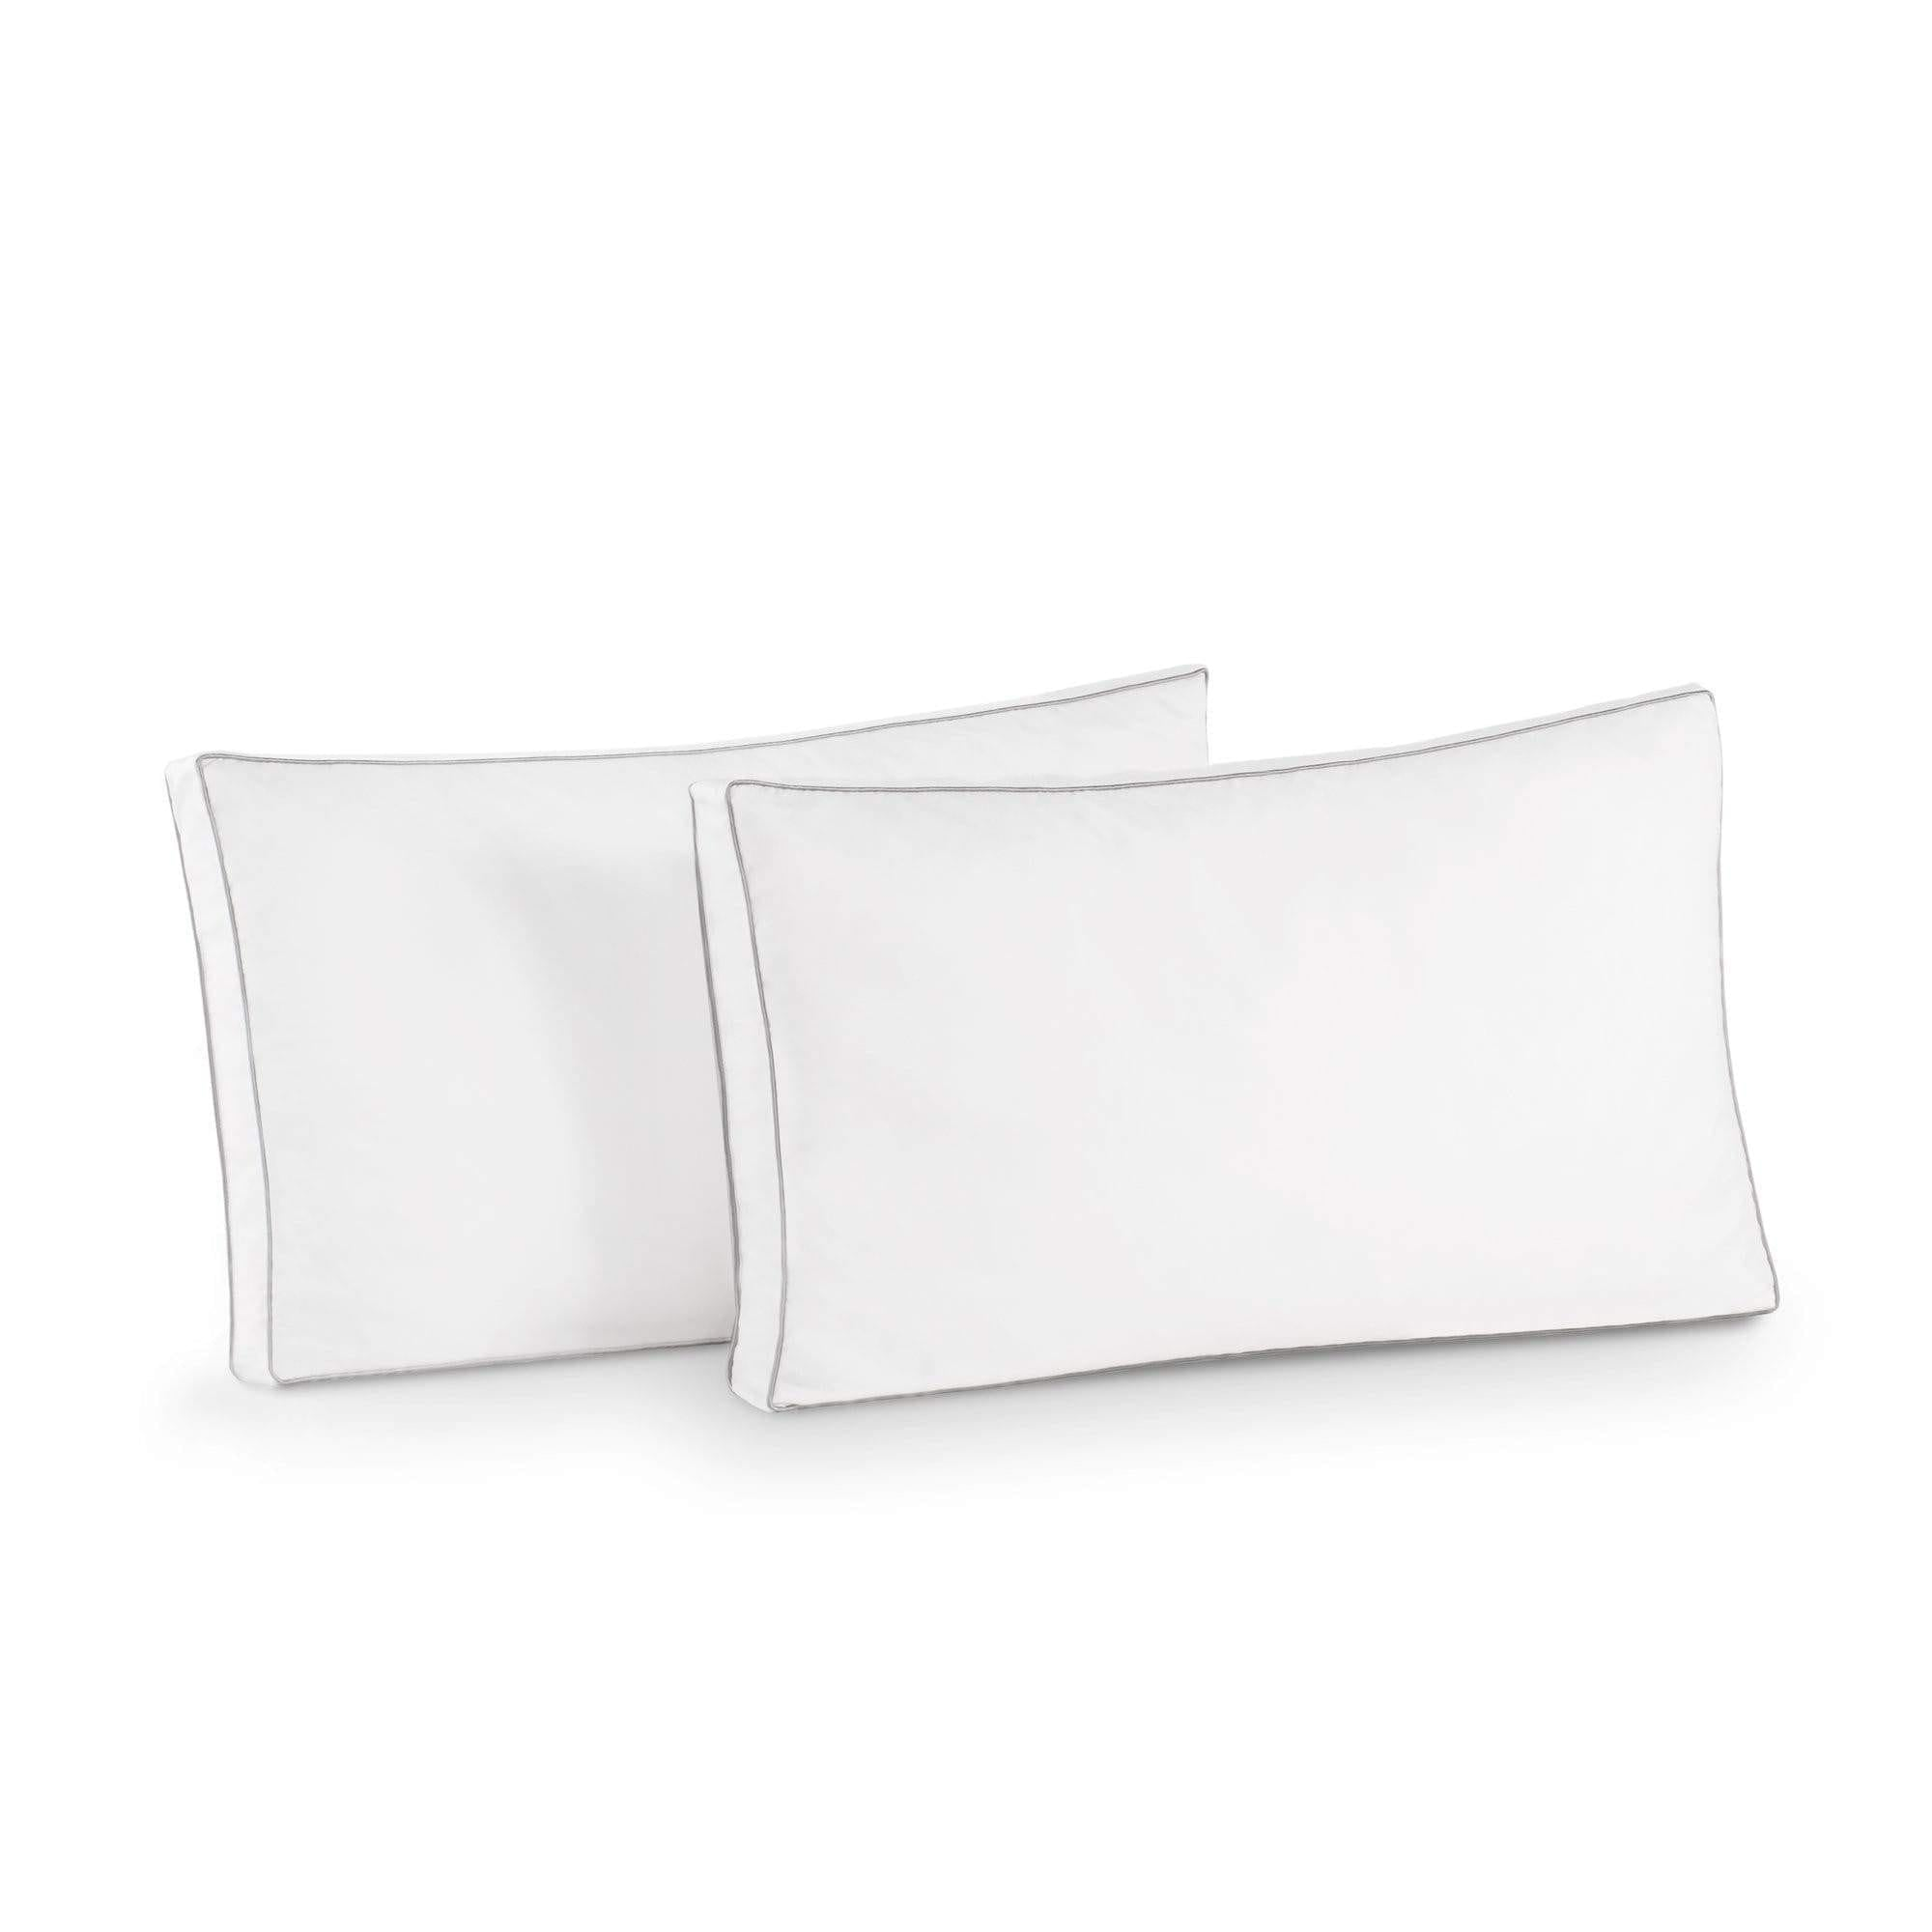 Shredded Memory Foam Pillow (2 PACK)